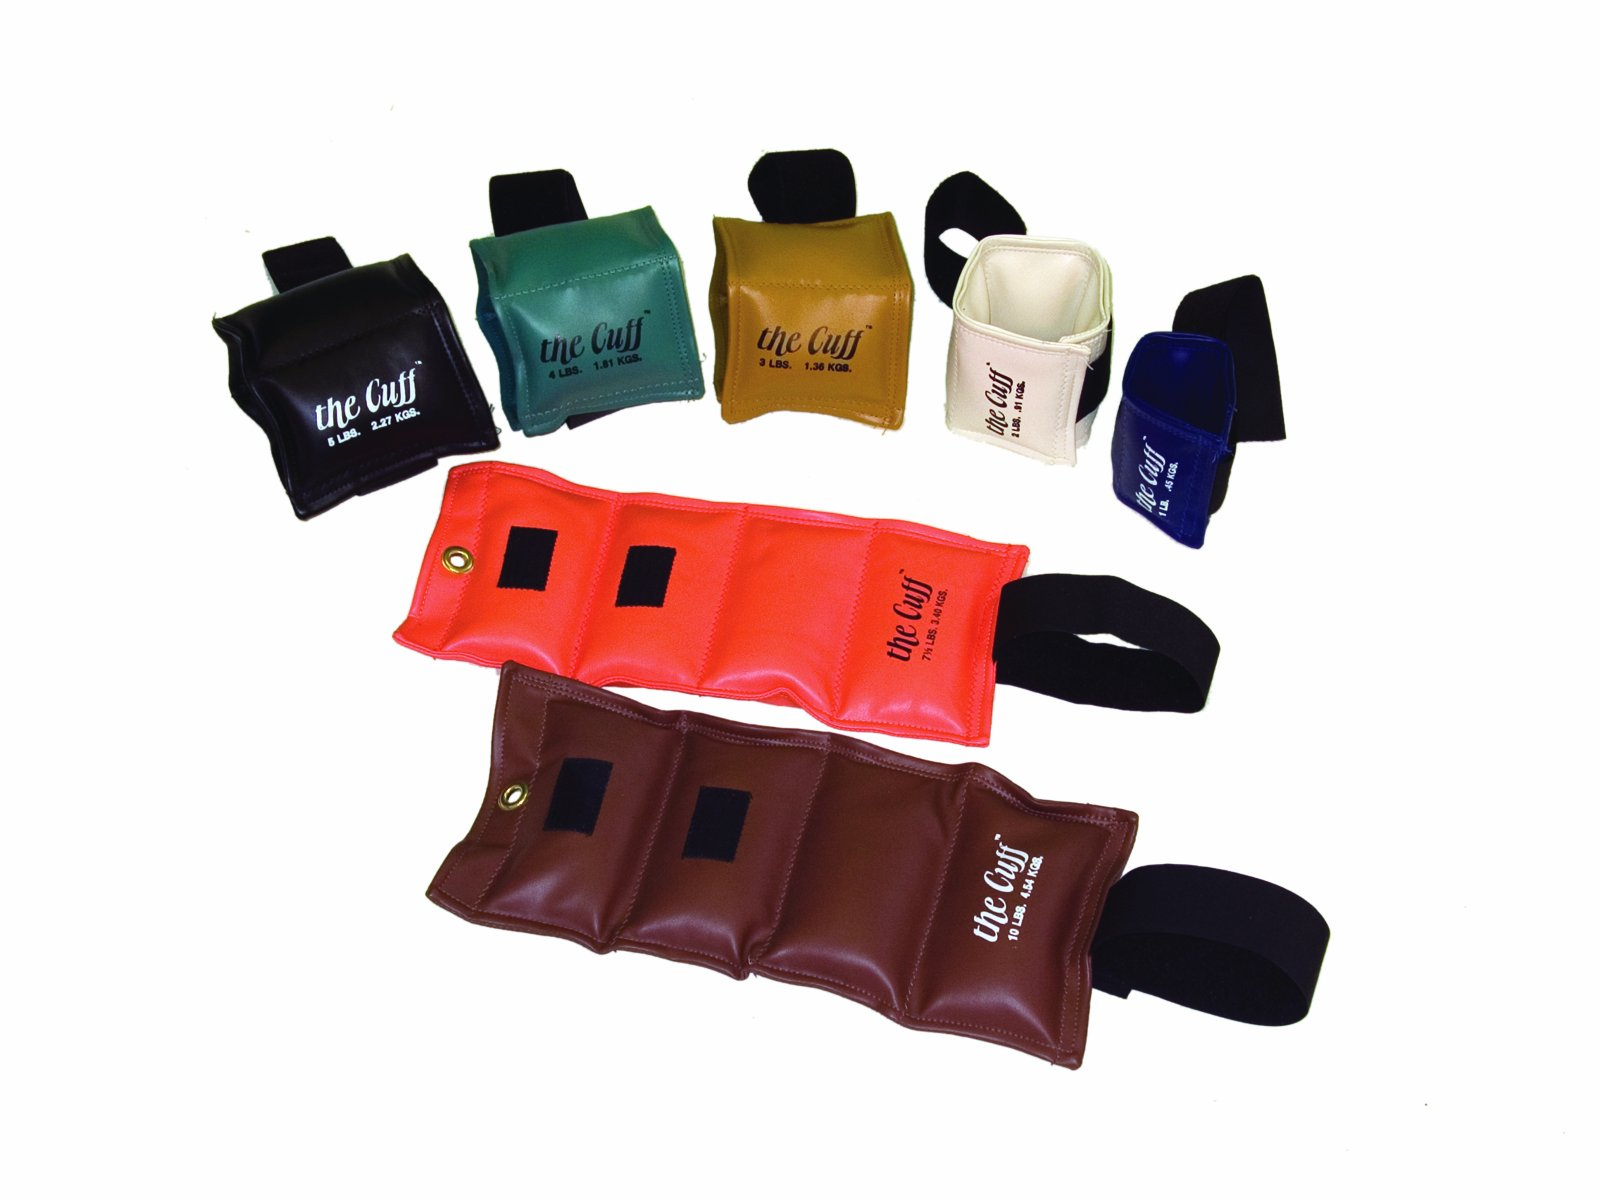 Cuff Rehabilitation Ankle And Wrist Weight 7 Piece Set - 1 Ea. 1, 2, 3, 4, 5, 7.5, 10 by the Cuff_ by The Cuff